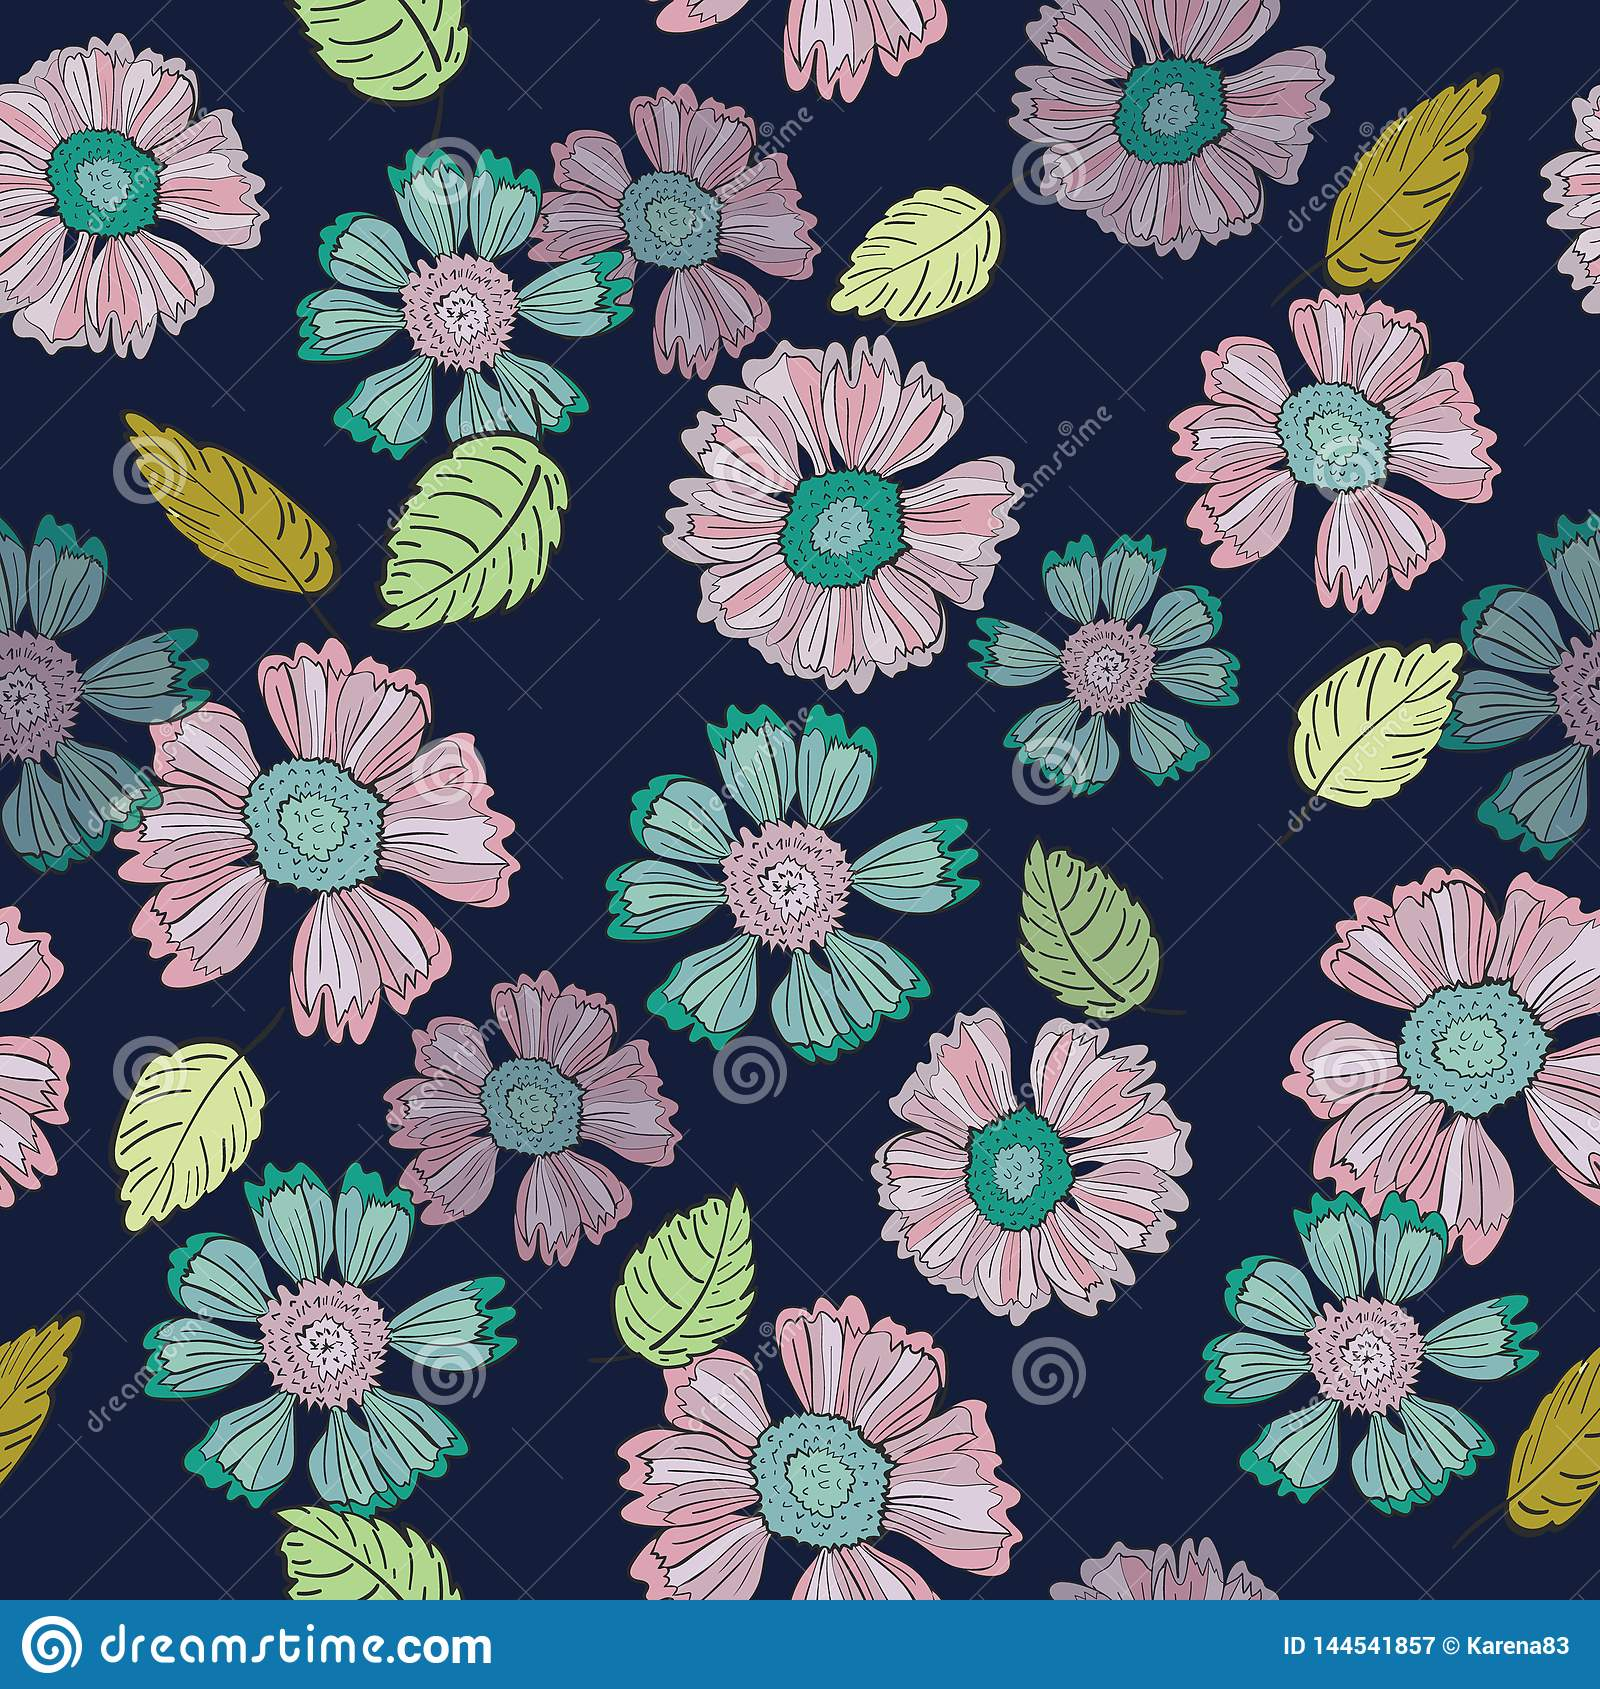 A Fun Floral Repeat Print Pattern  in Vector